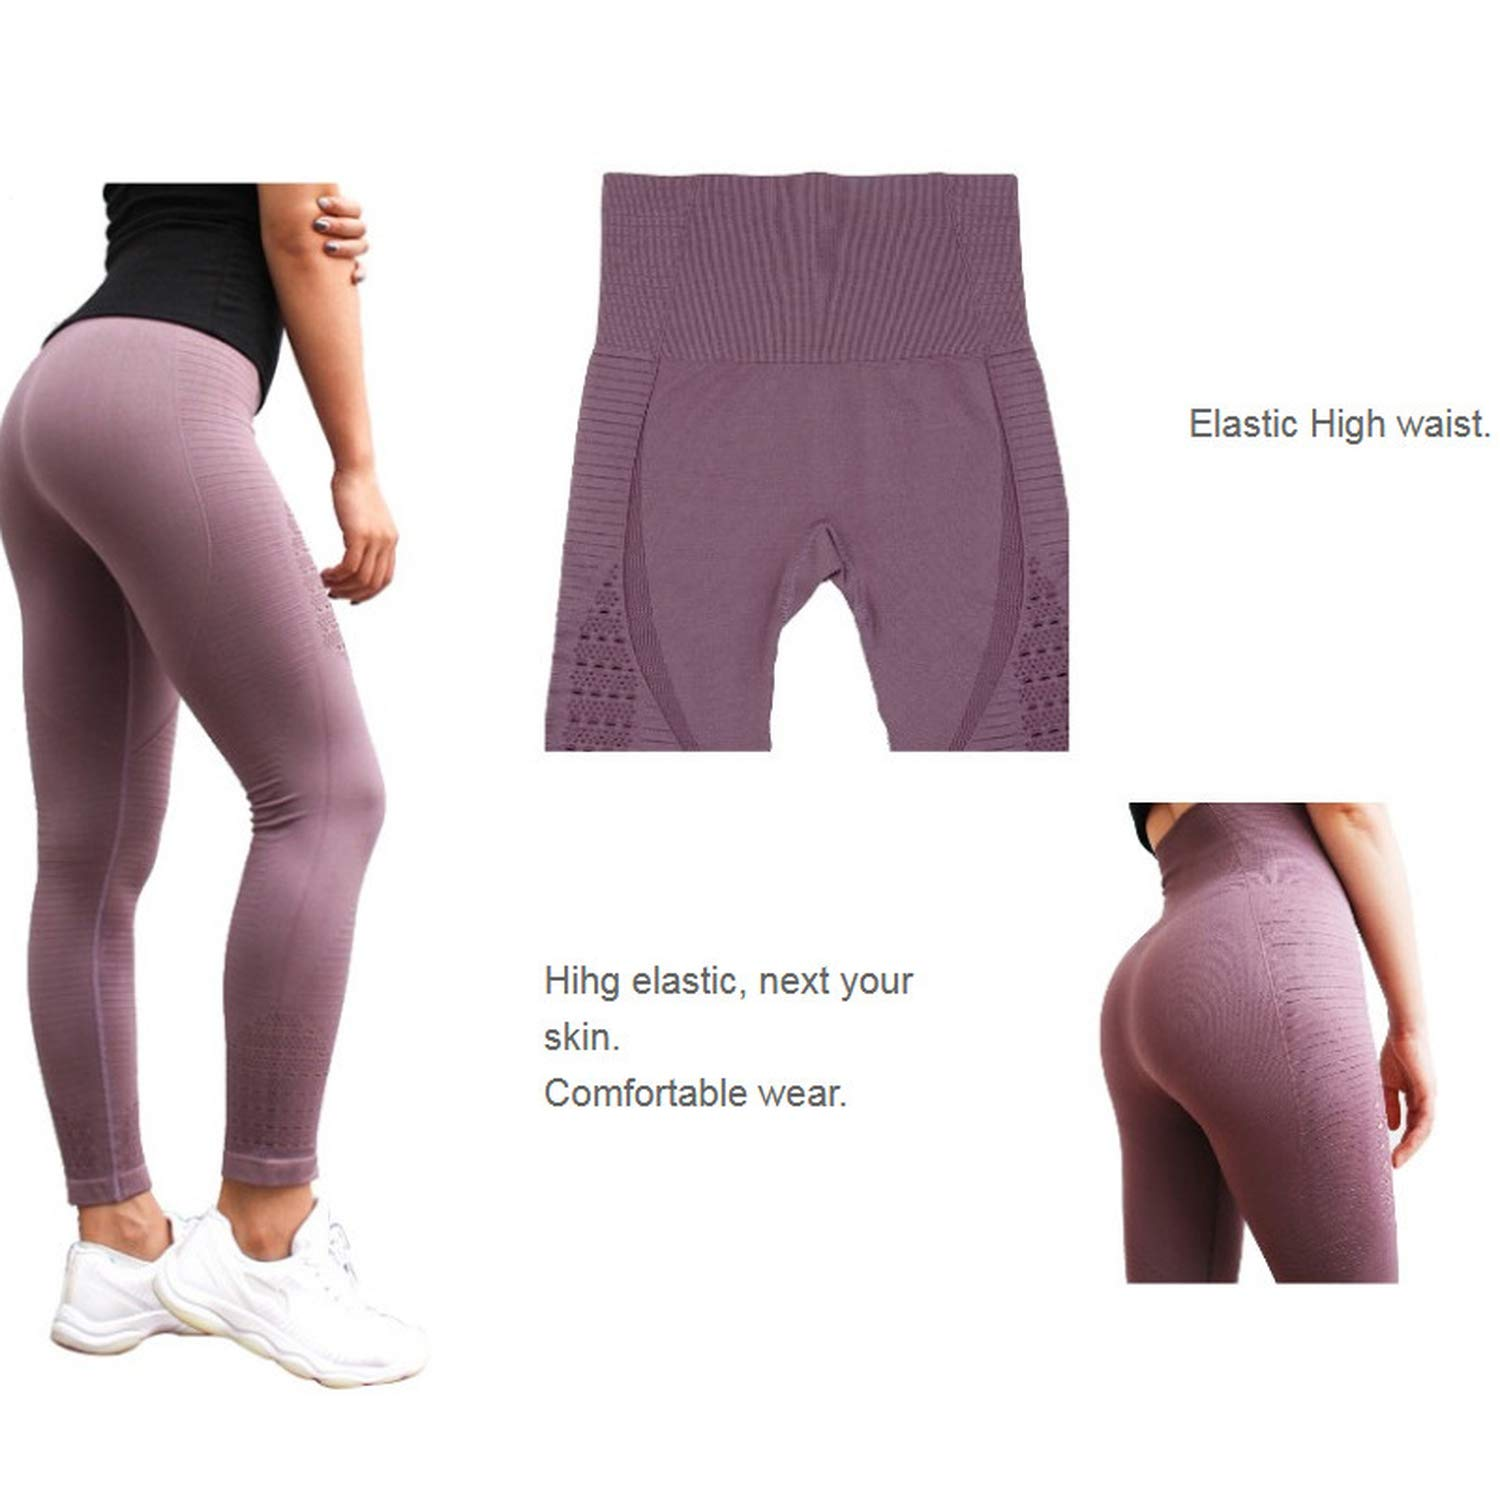 062f792719588b Amazon.com: High Waisted Yoga Pants Shark Gym Seamless Leggings High  Elastic Exercise Tights Women Pants for Fitness Yoga Running Sports:  Clothing